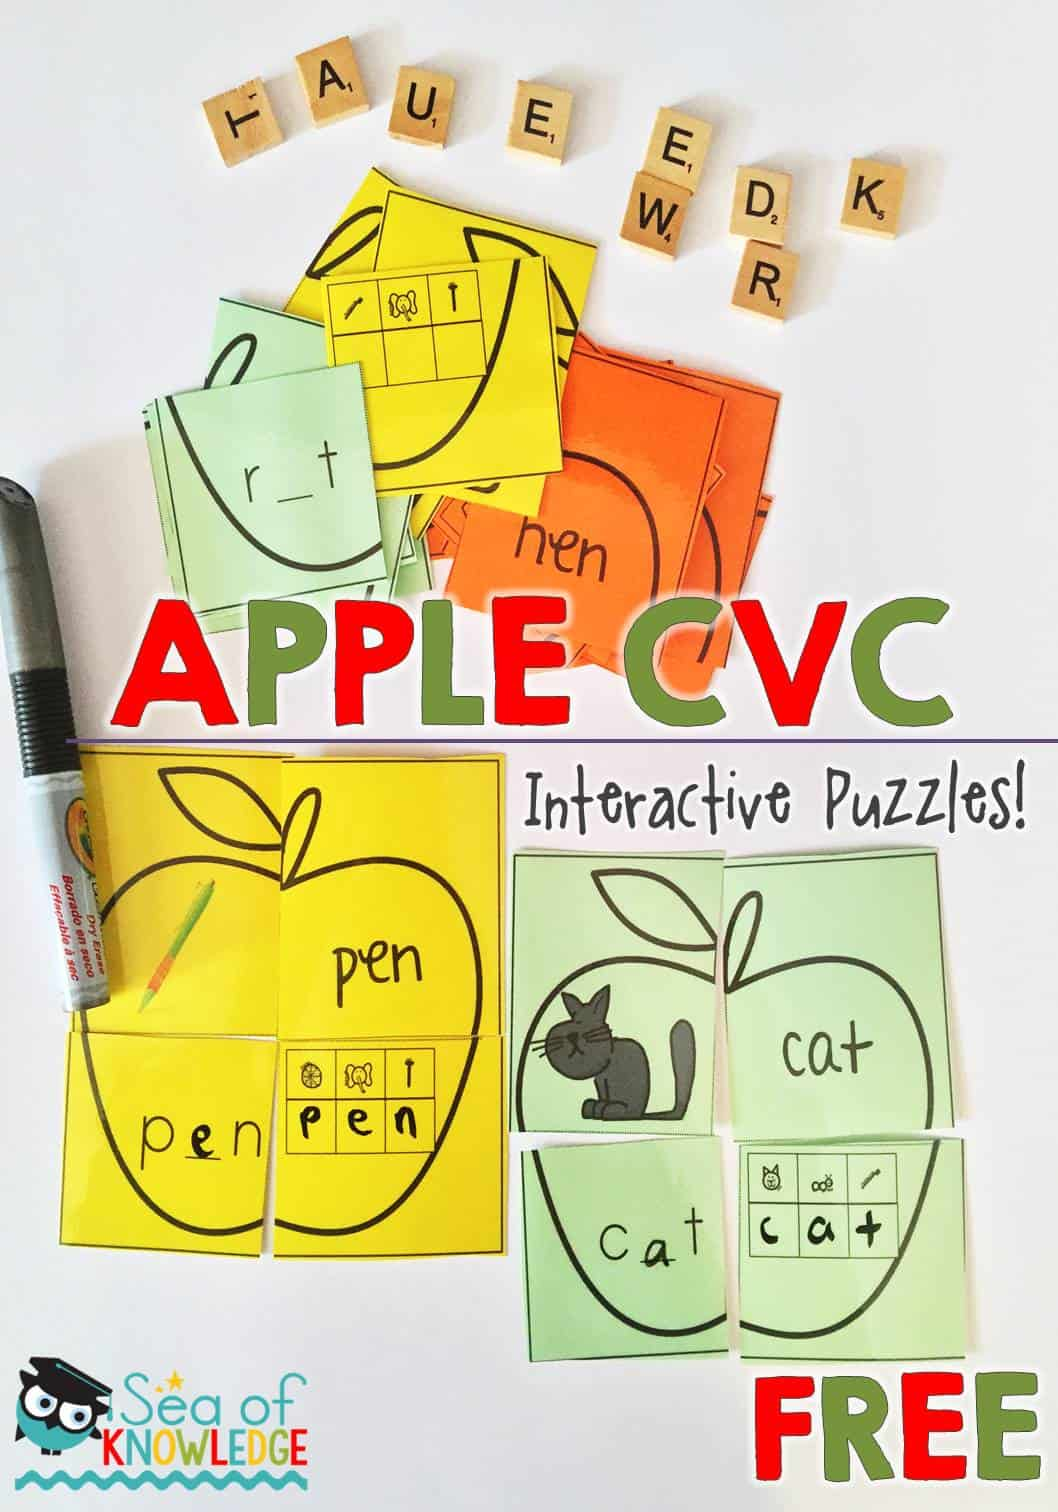 CVC Words Interactive Puzzles I Teach K-2 Linky